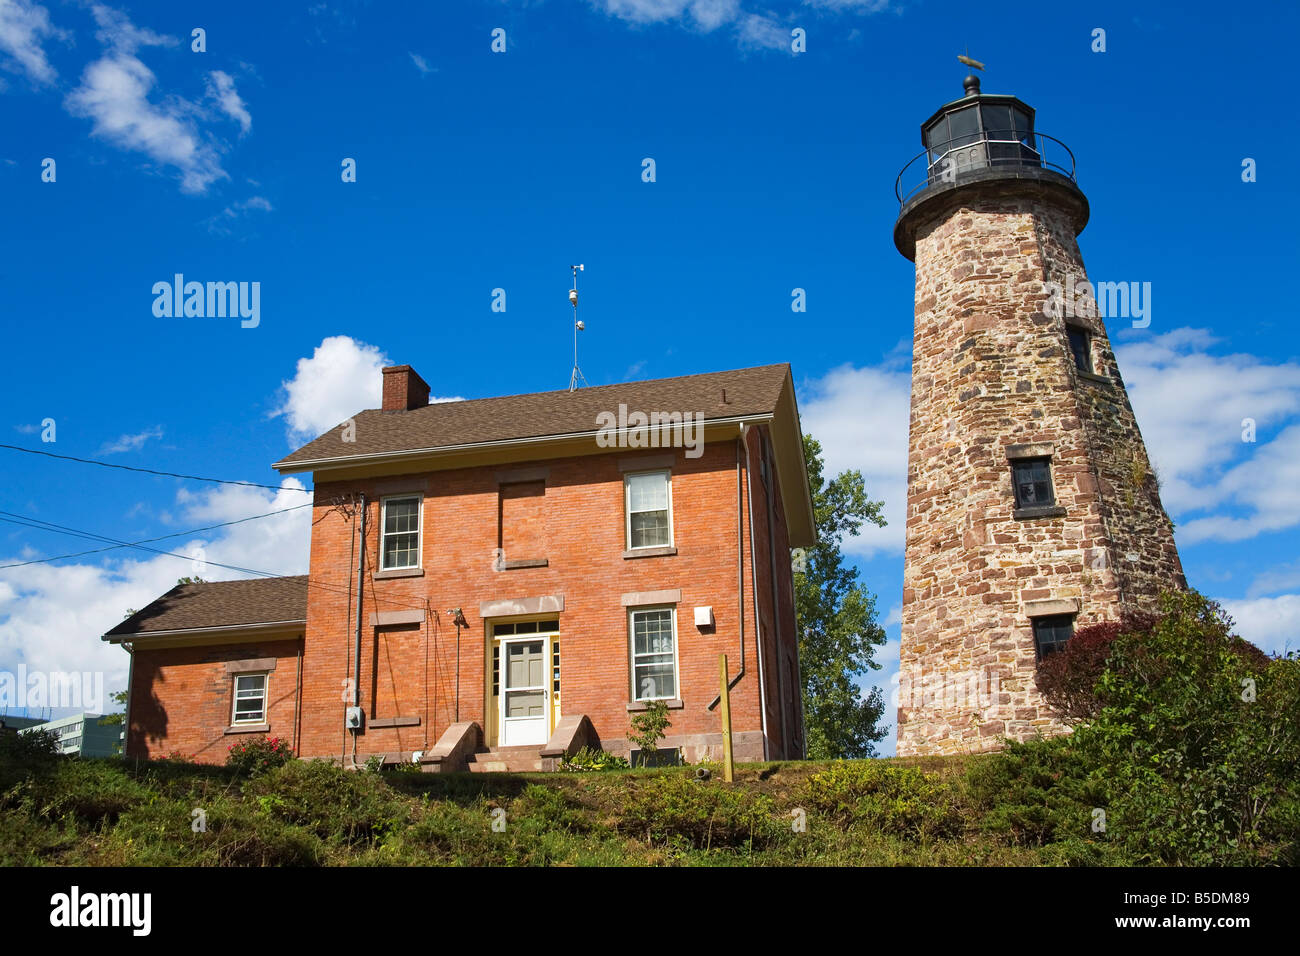 Charlotte Genesee Lighthouse: Charlotte-genesee Lighthouse Museum, Rochester, New York